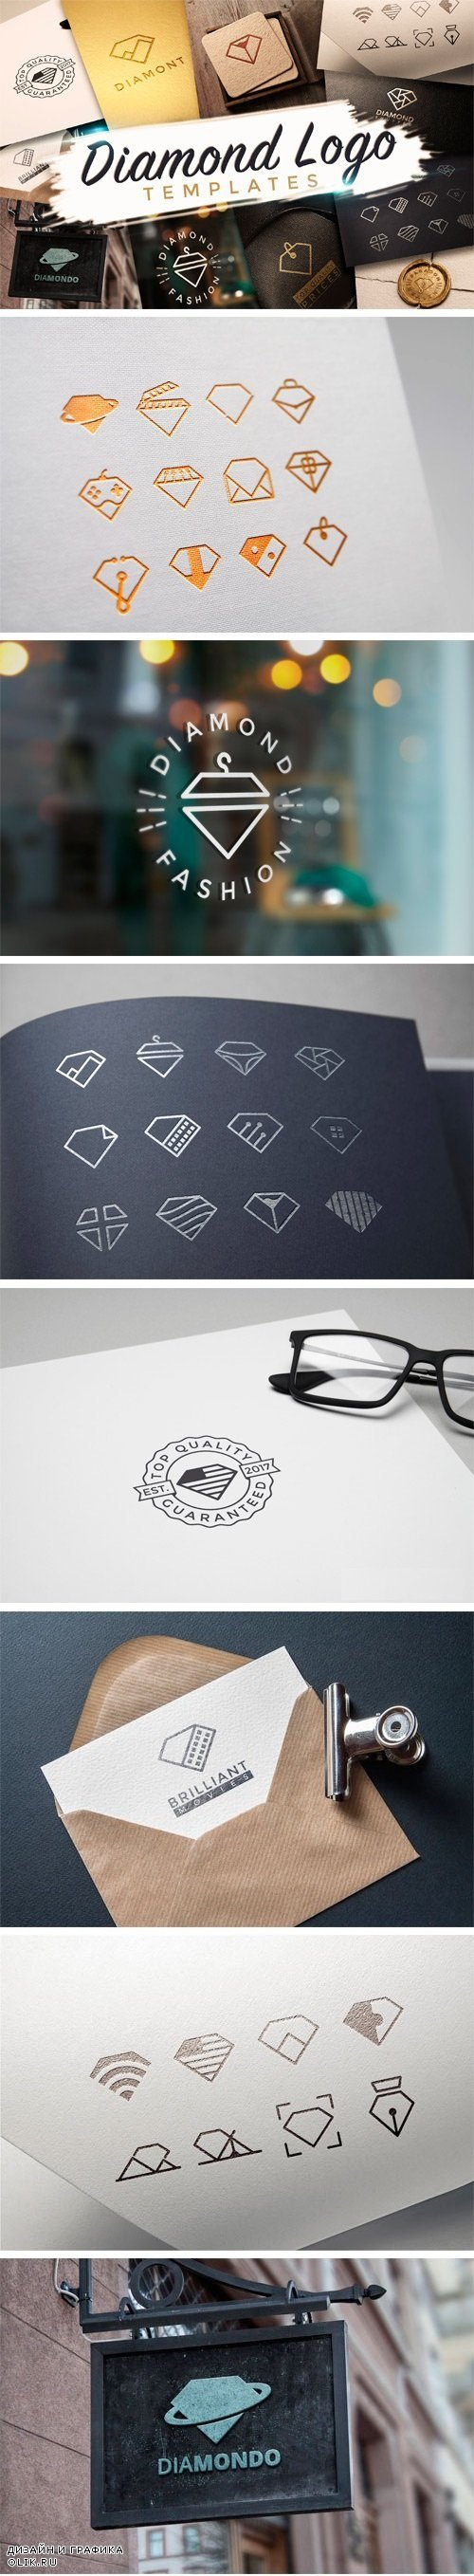 32 Brilliant Diamond Logo Templates - 1527486